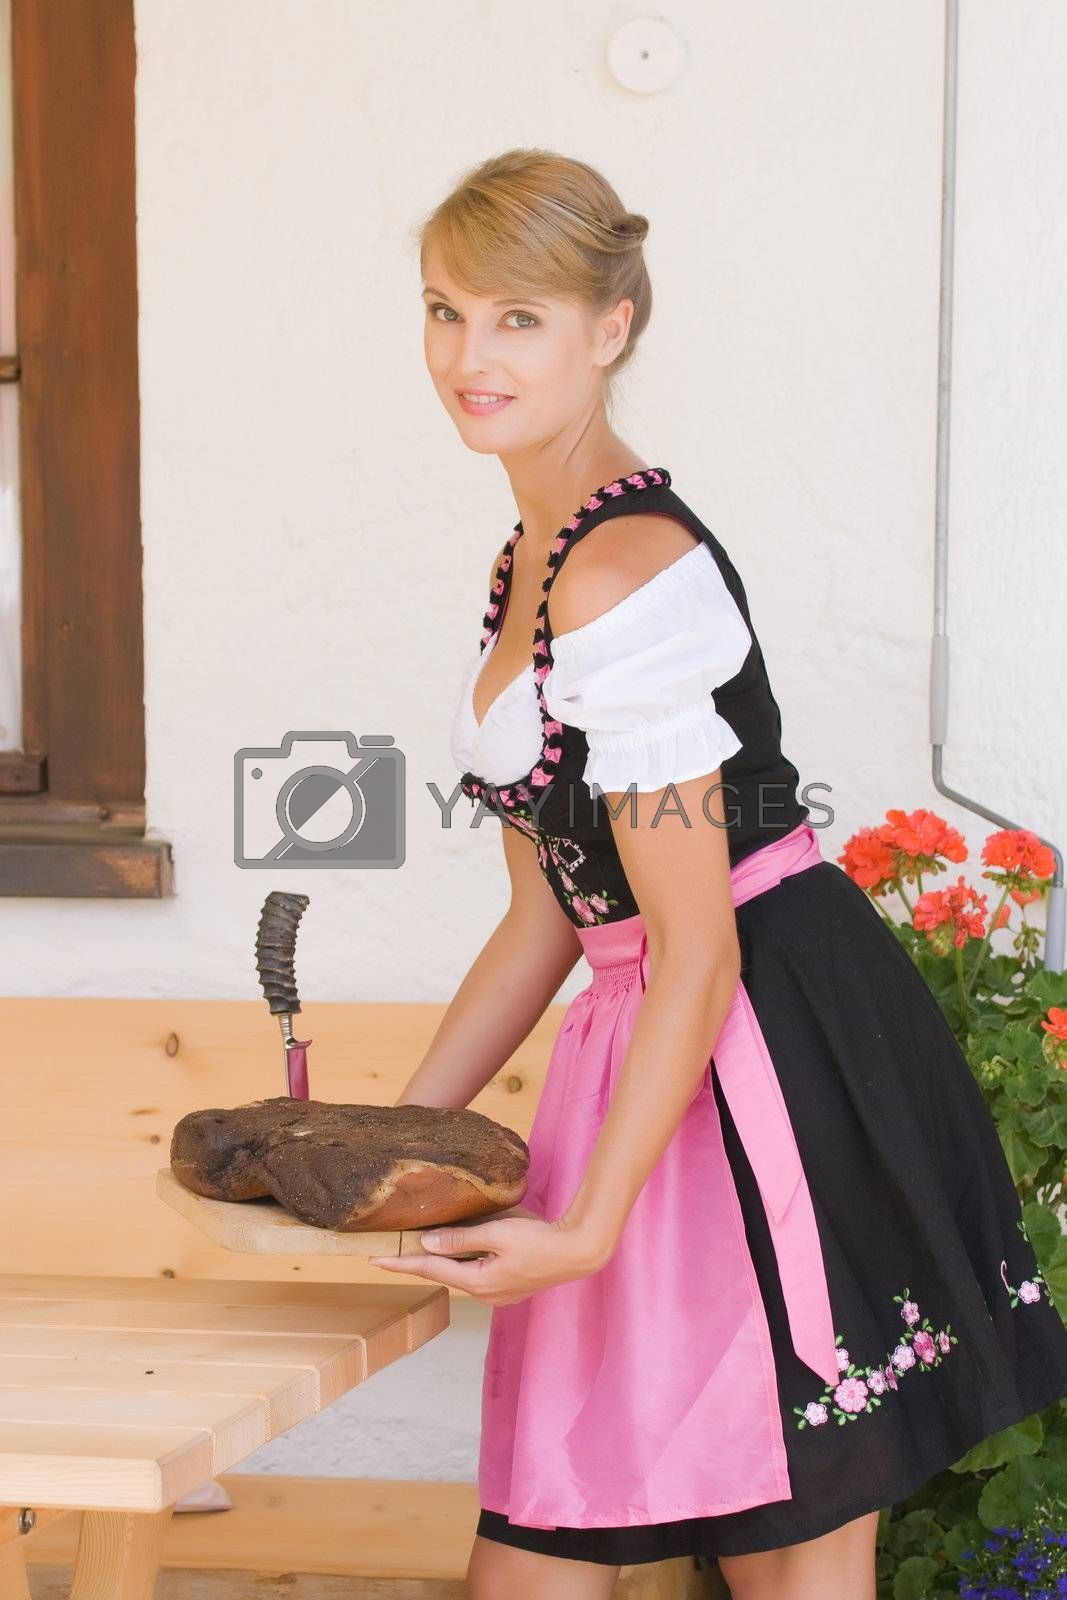 Bavarian Dirndl woman serving a bacon on a plate Alm